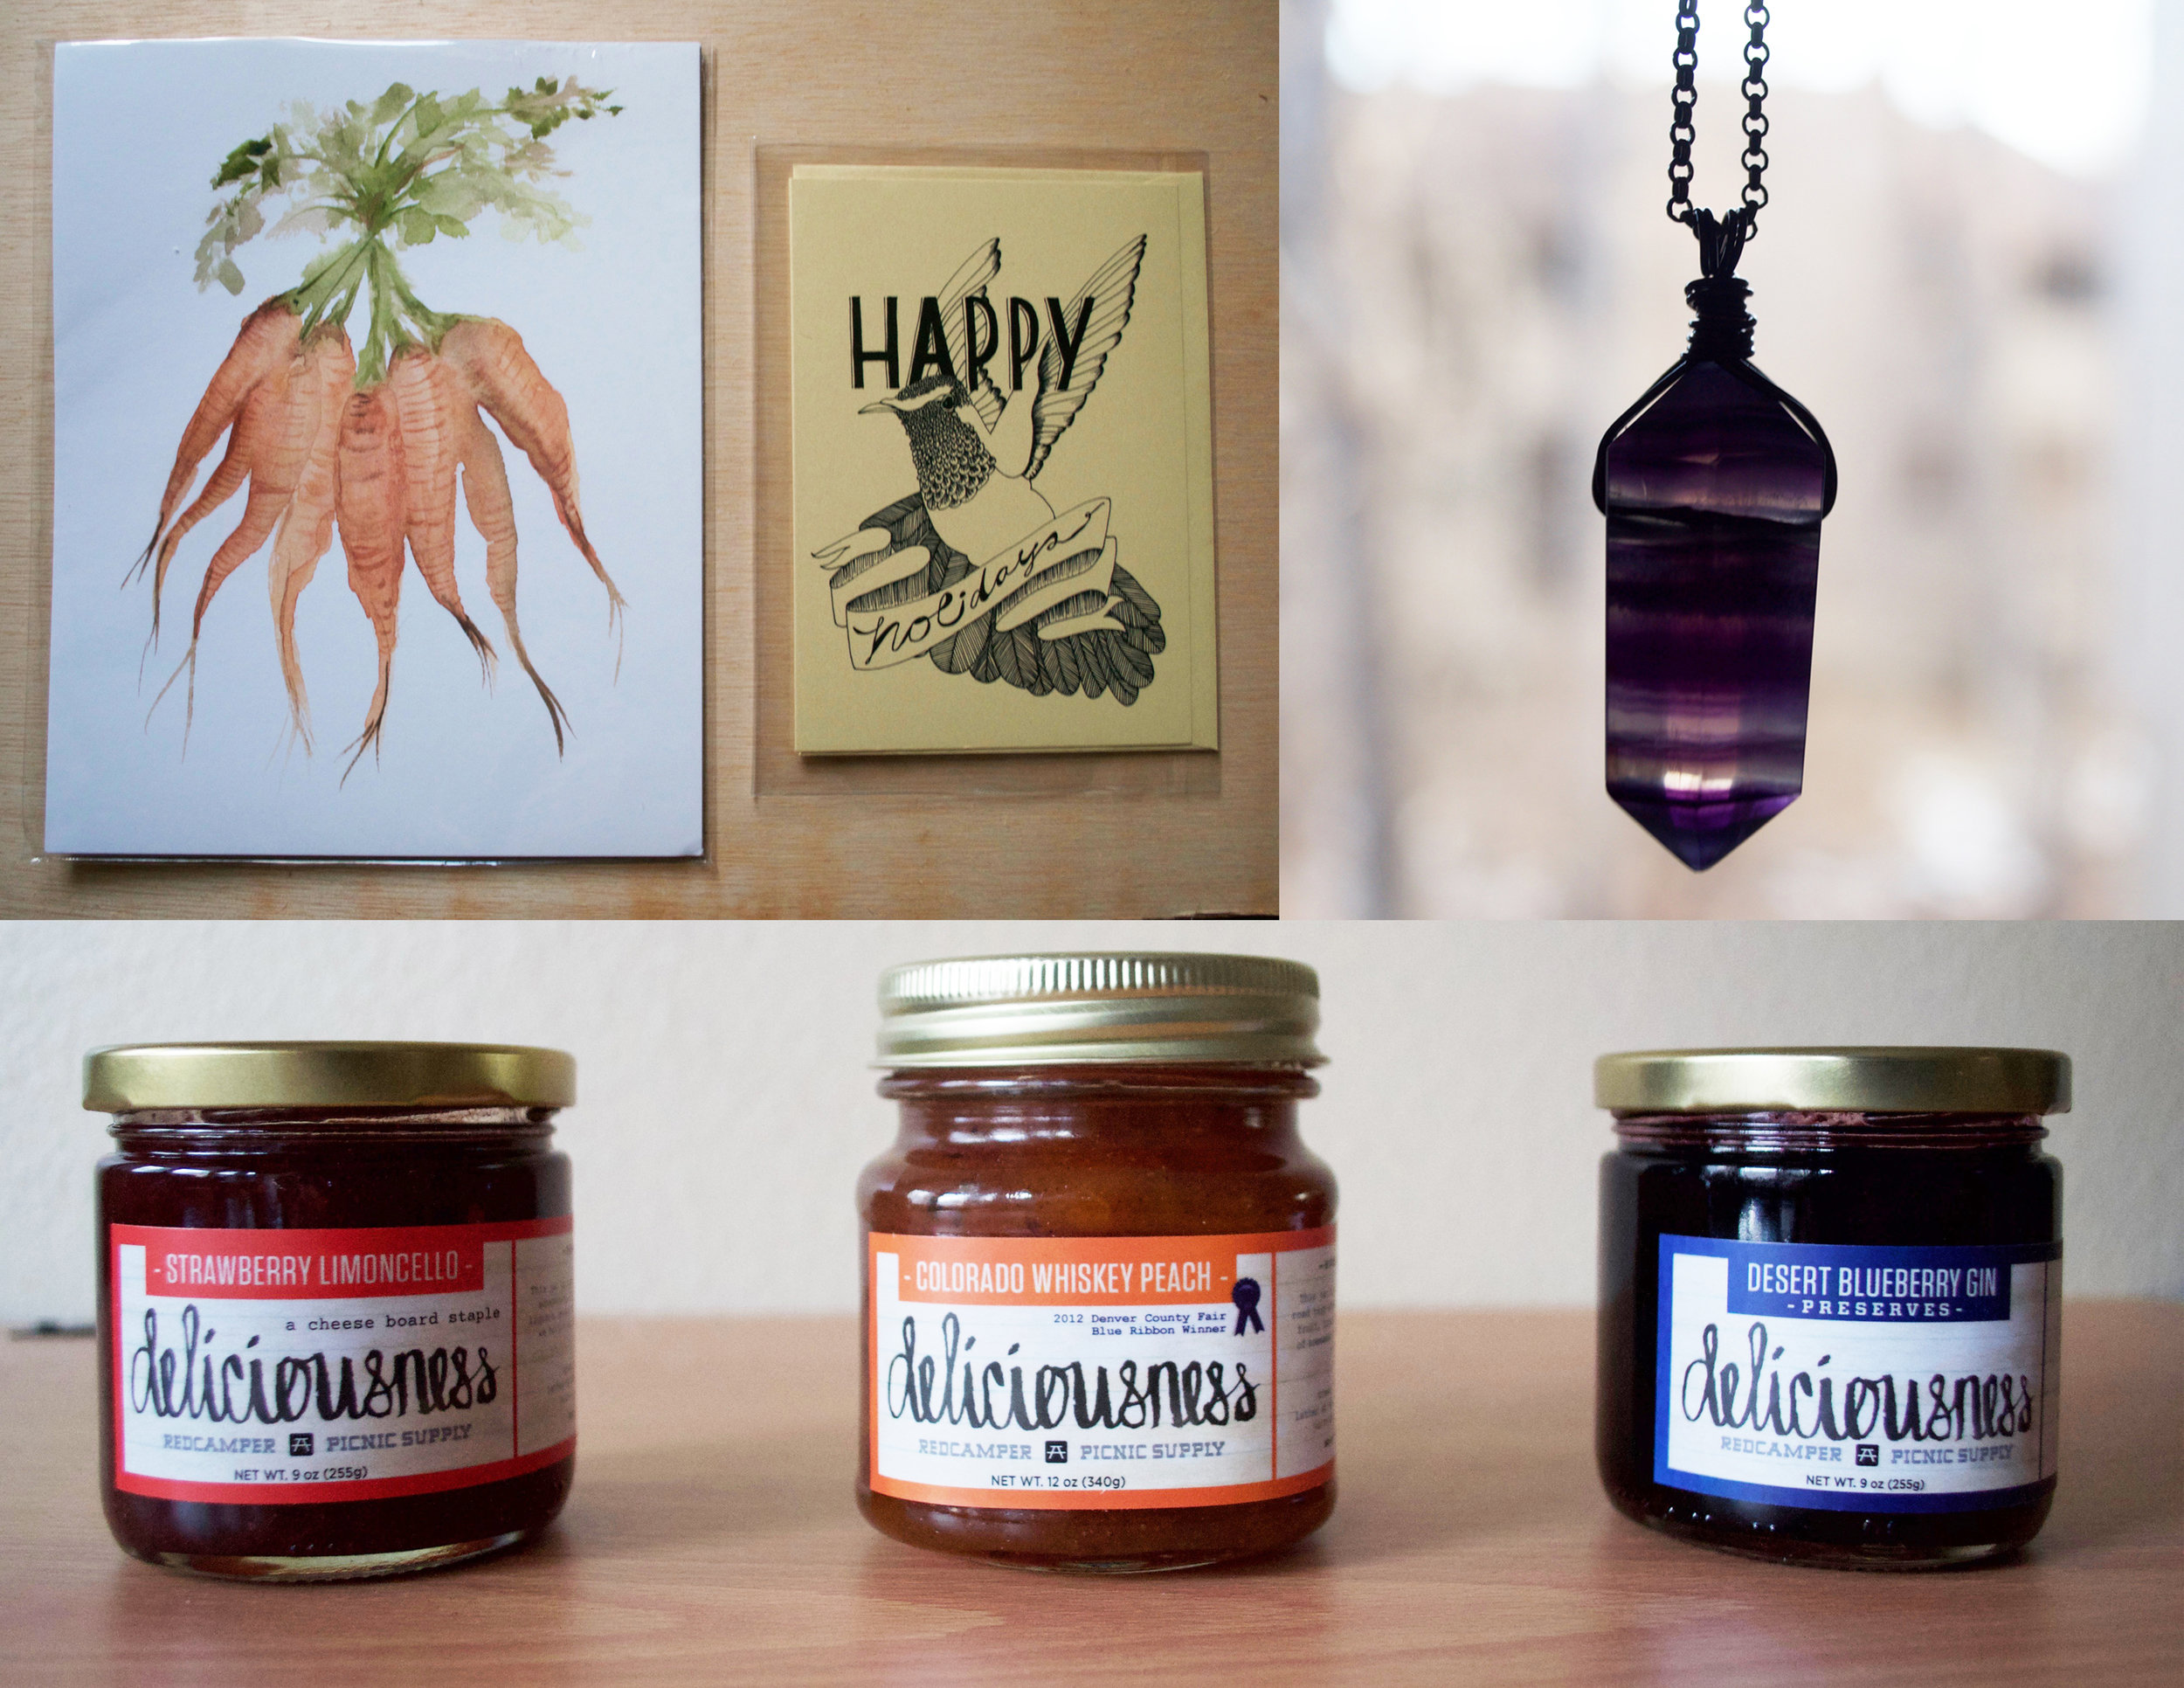 our collection of vendor products from the fair!